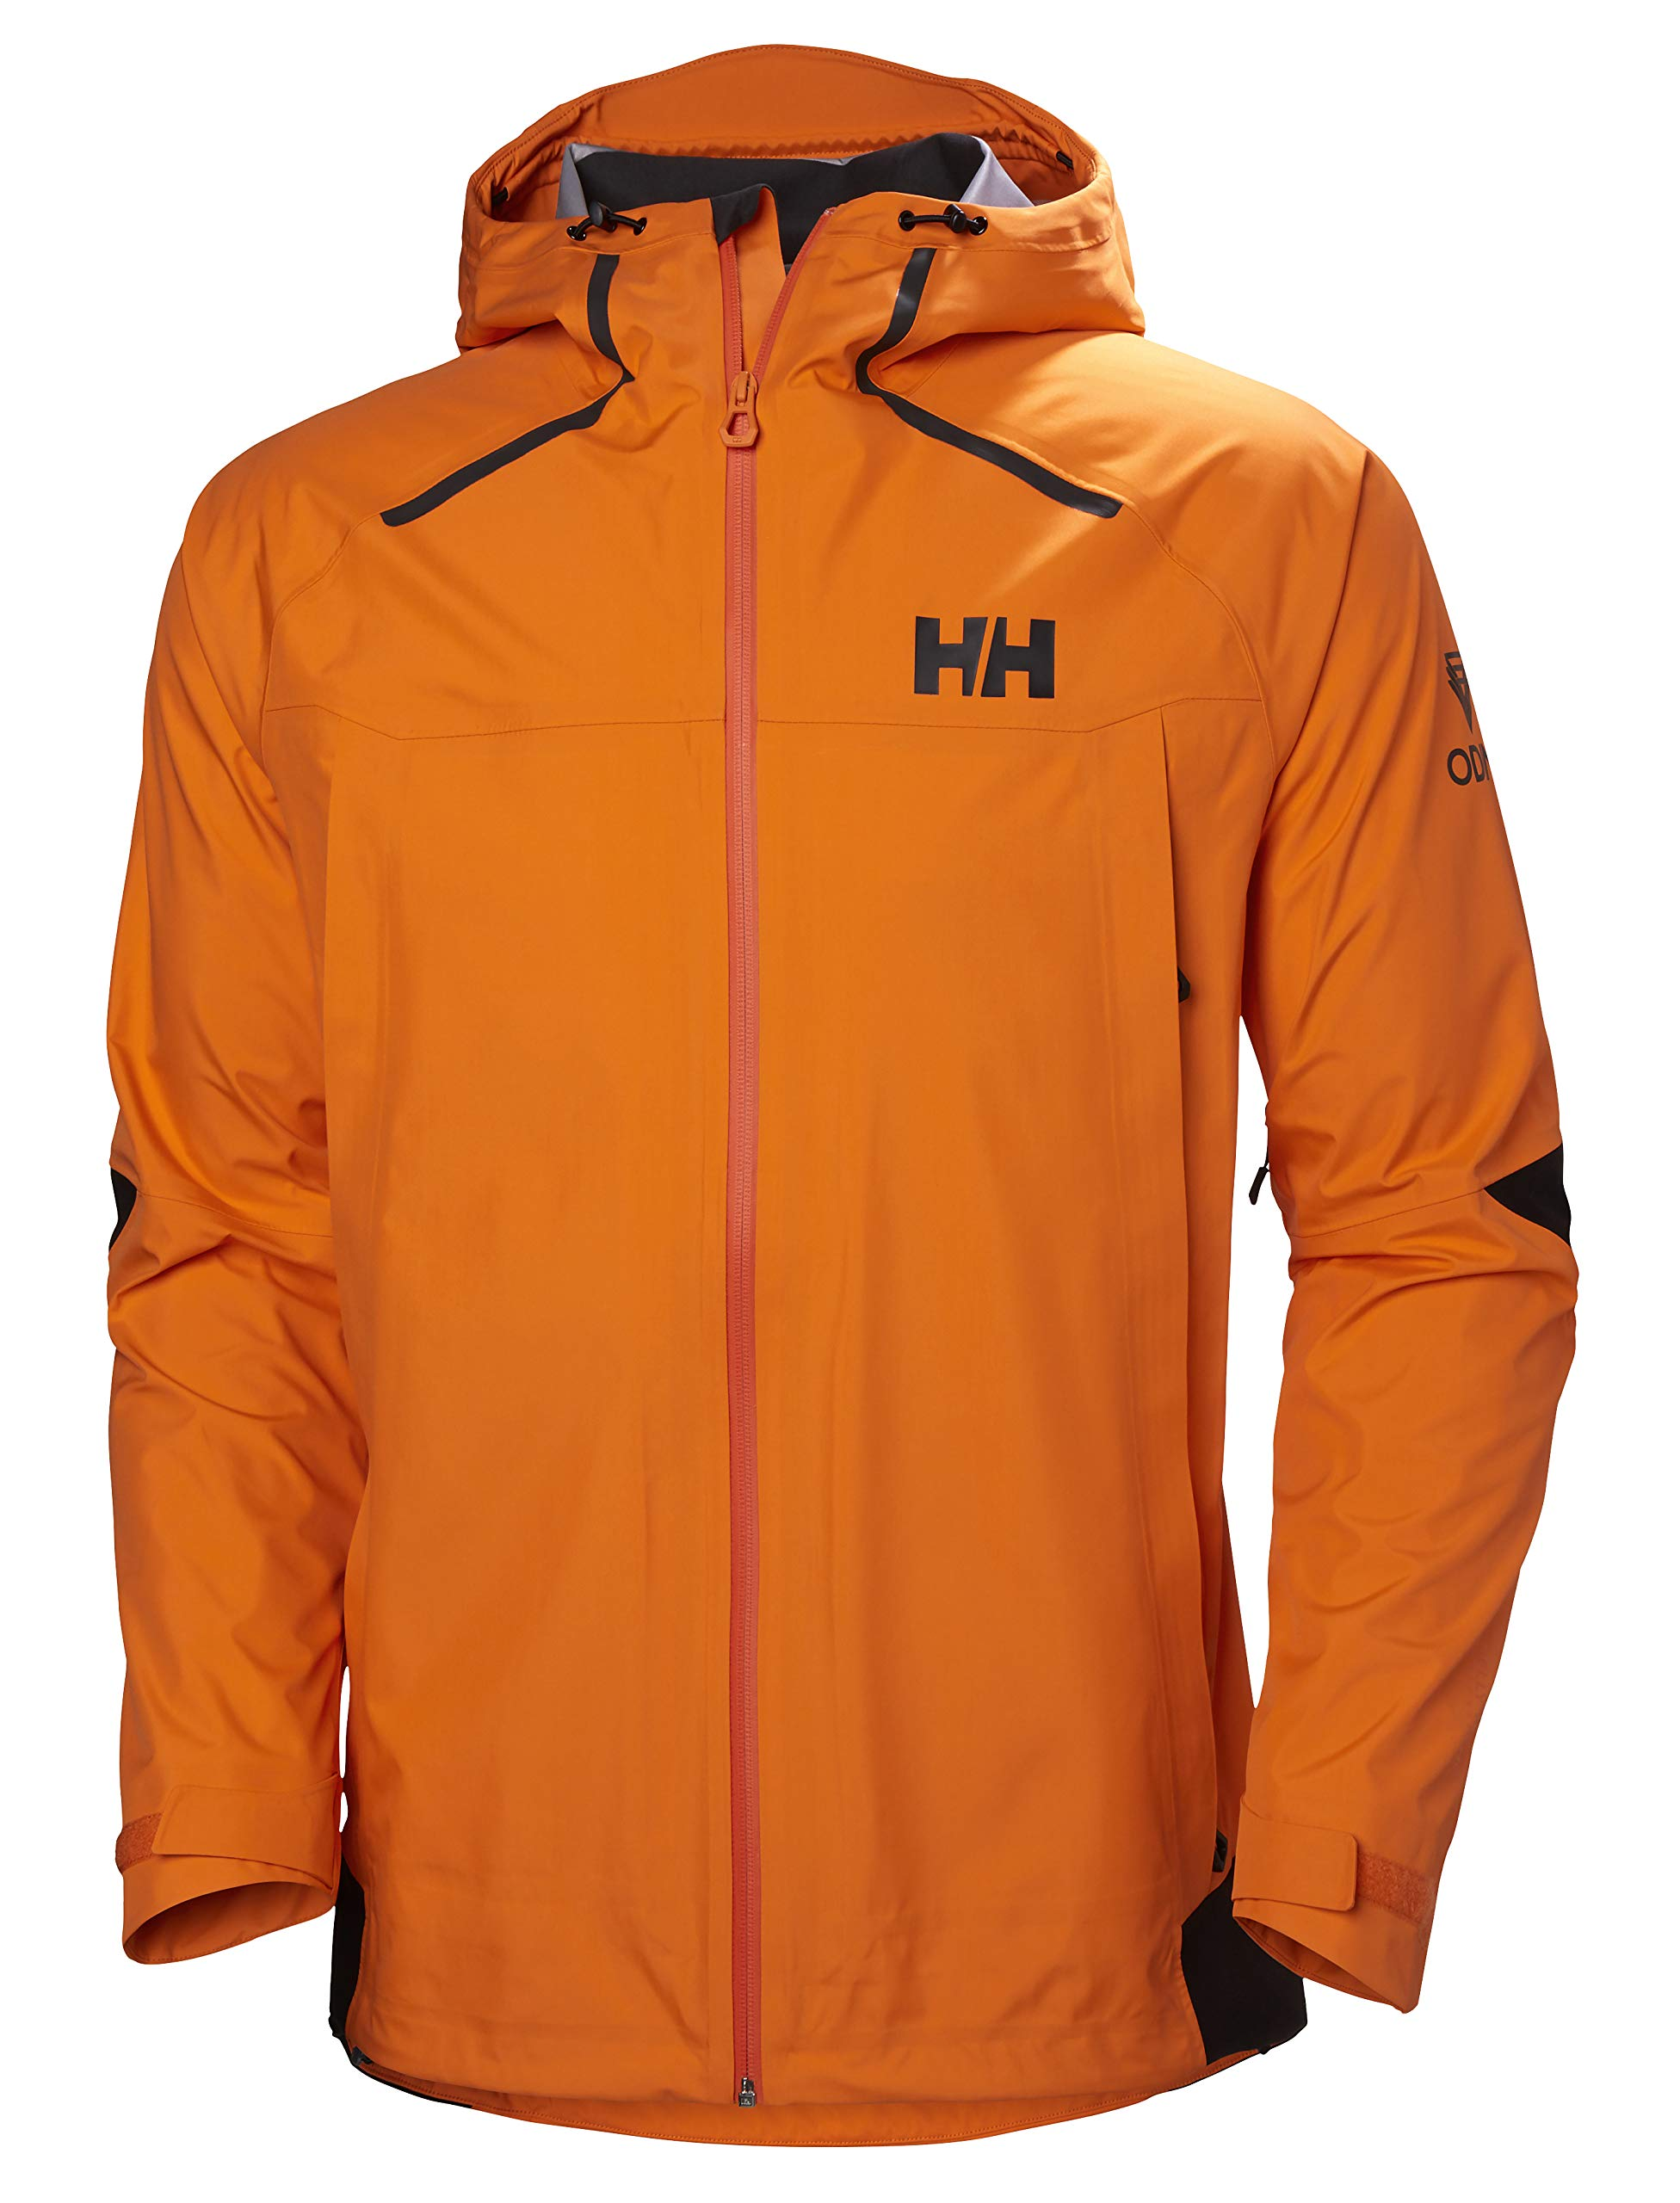 Helly Hansen Men's Loke Waterproof Windproof Breathable Adventure Hiking Rain Jacket with Hood